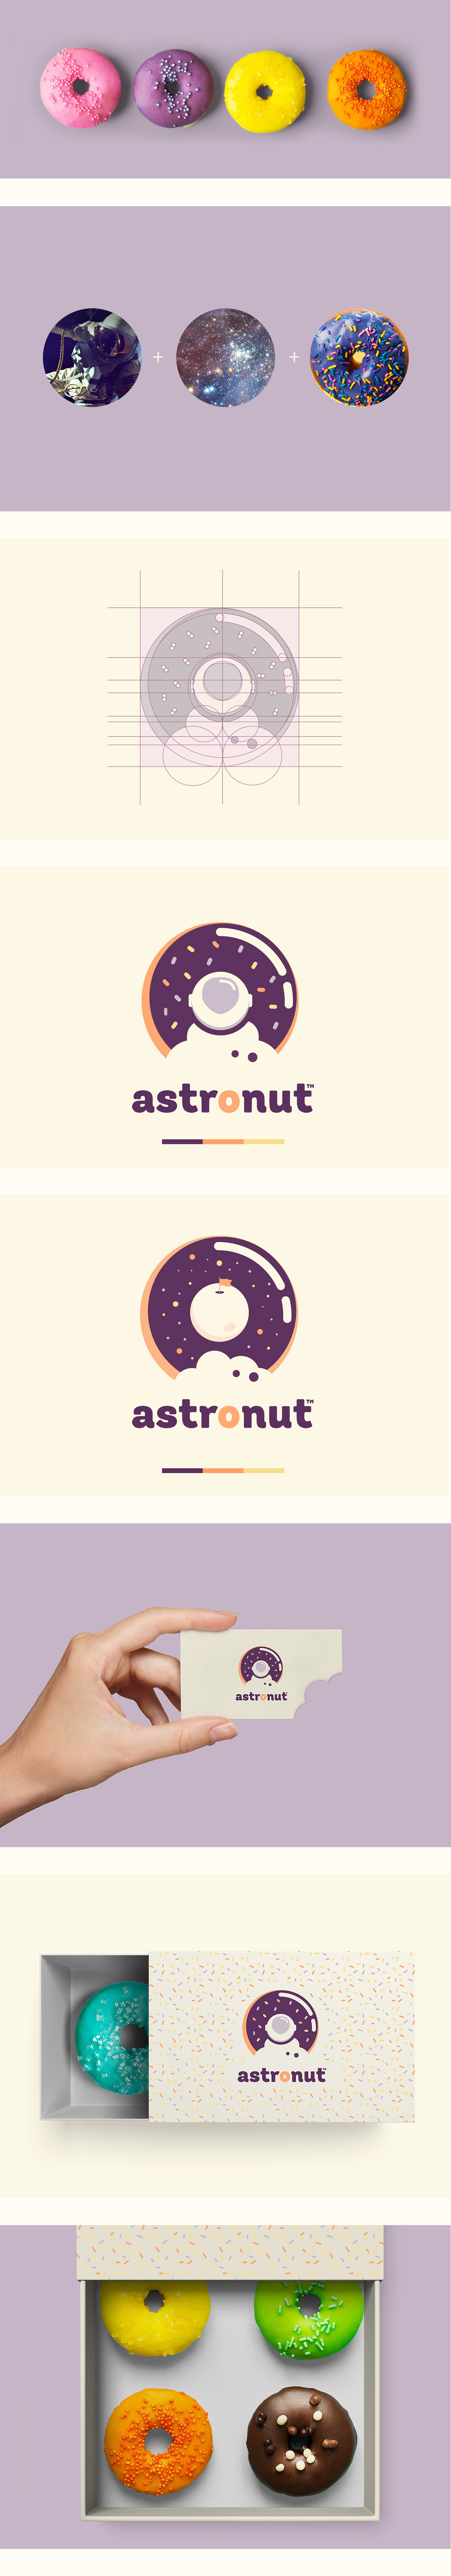 Branding, Packaging & Business Cards of Astronut that\'s a new bakery ...